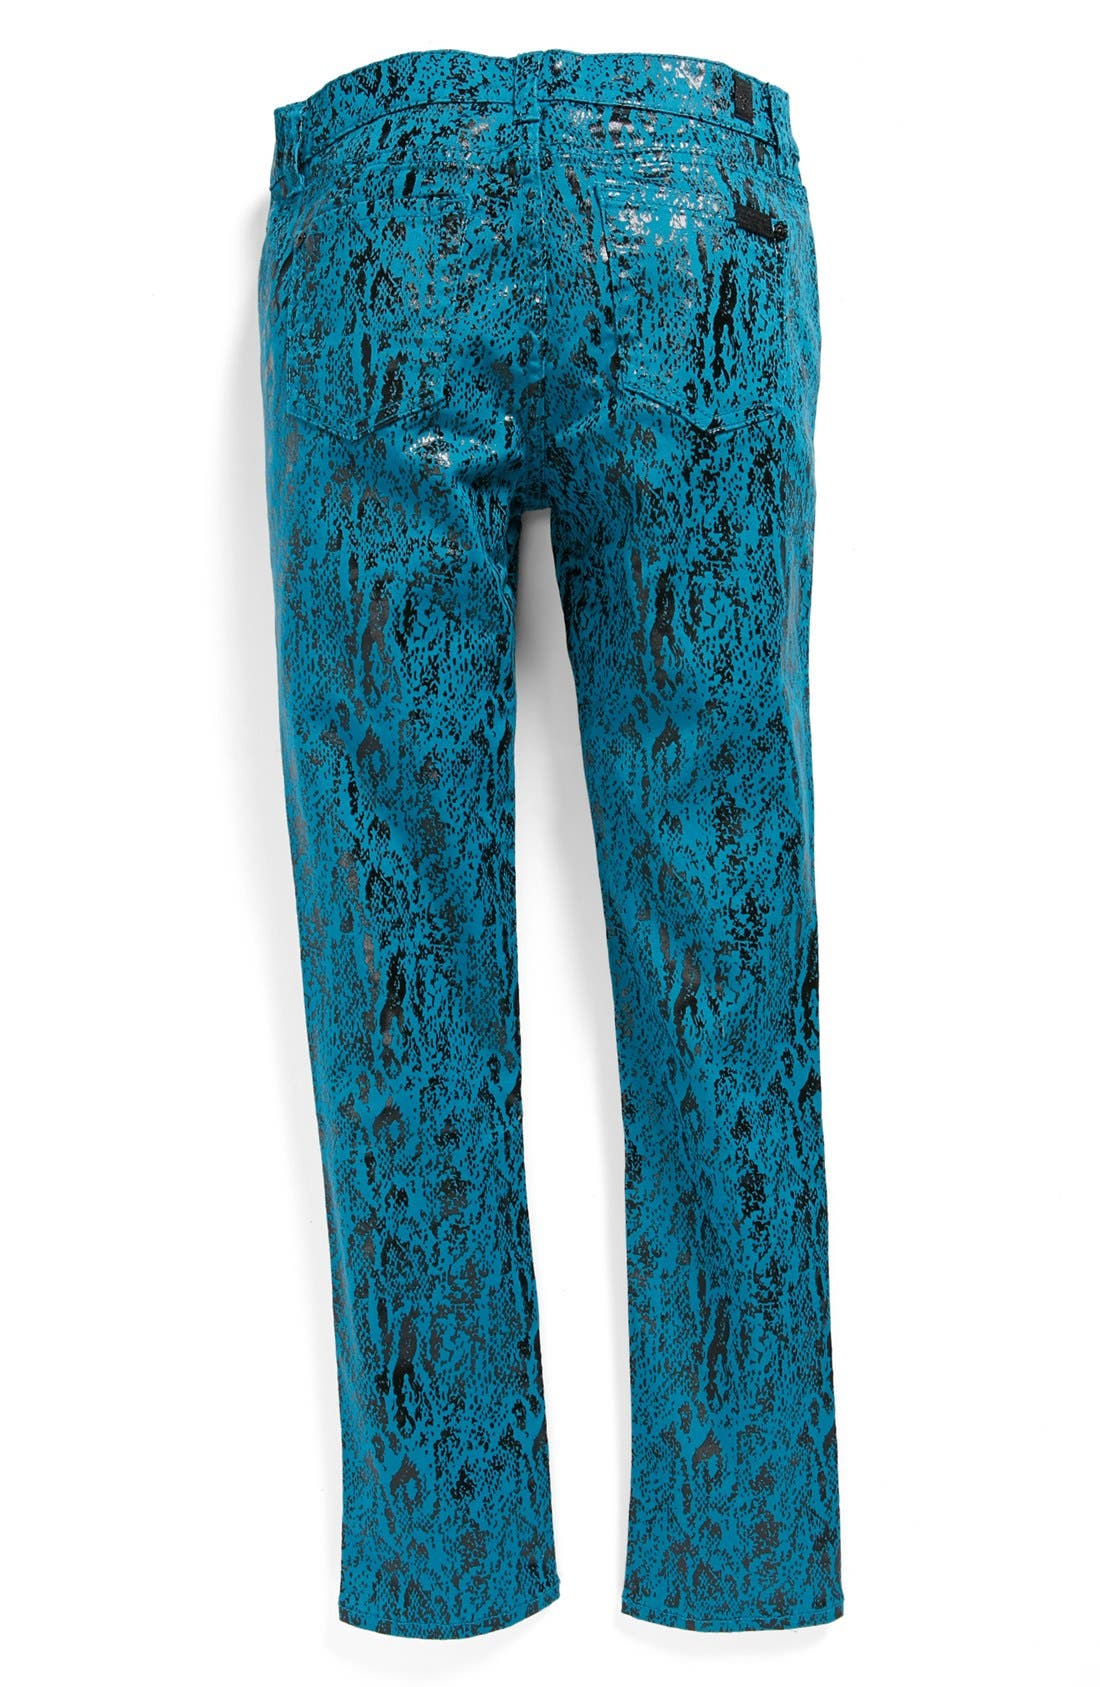 'The Skinny' Stretch Jeans,                             Main thumbnail 1, color,                             400